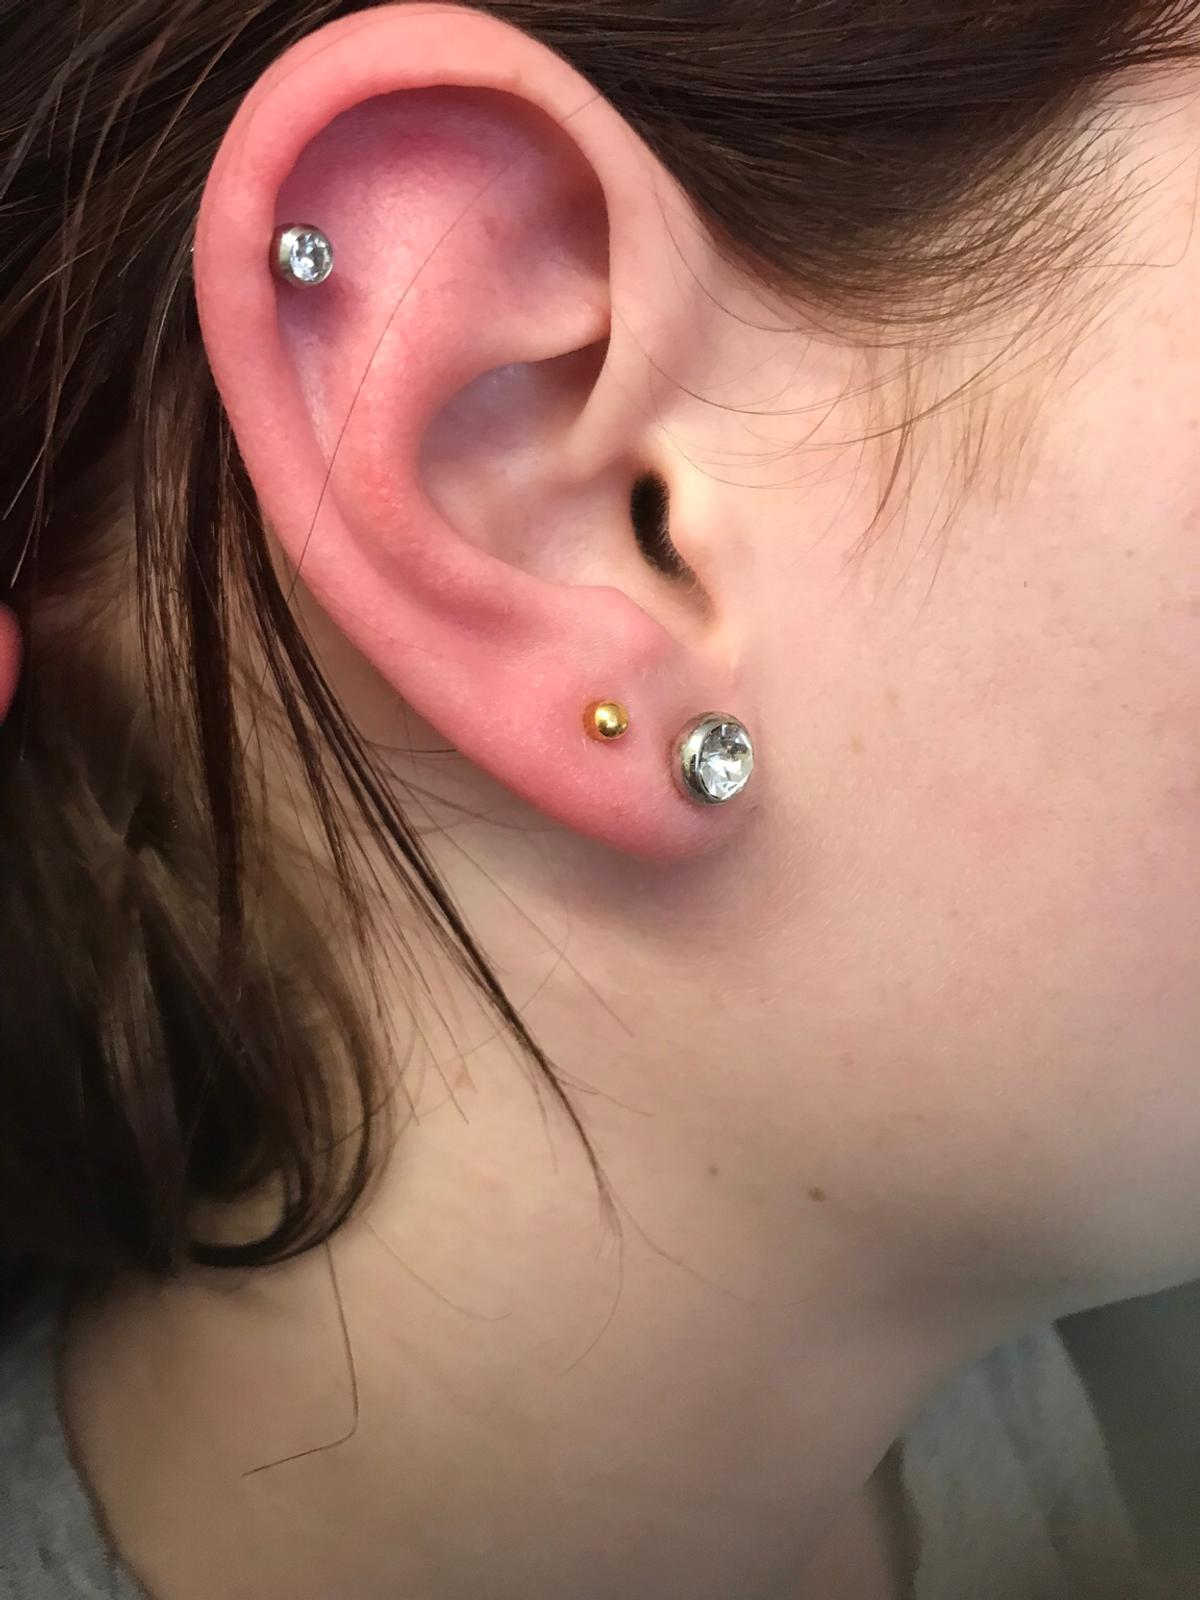 Ear Nose And Top Ear Piercings